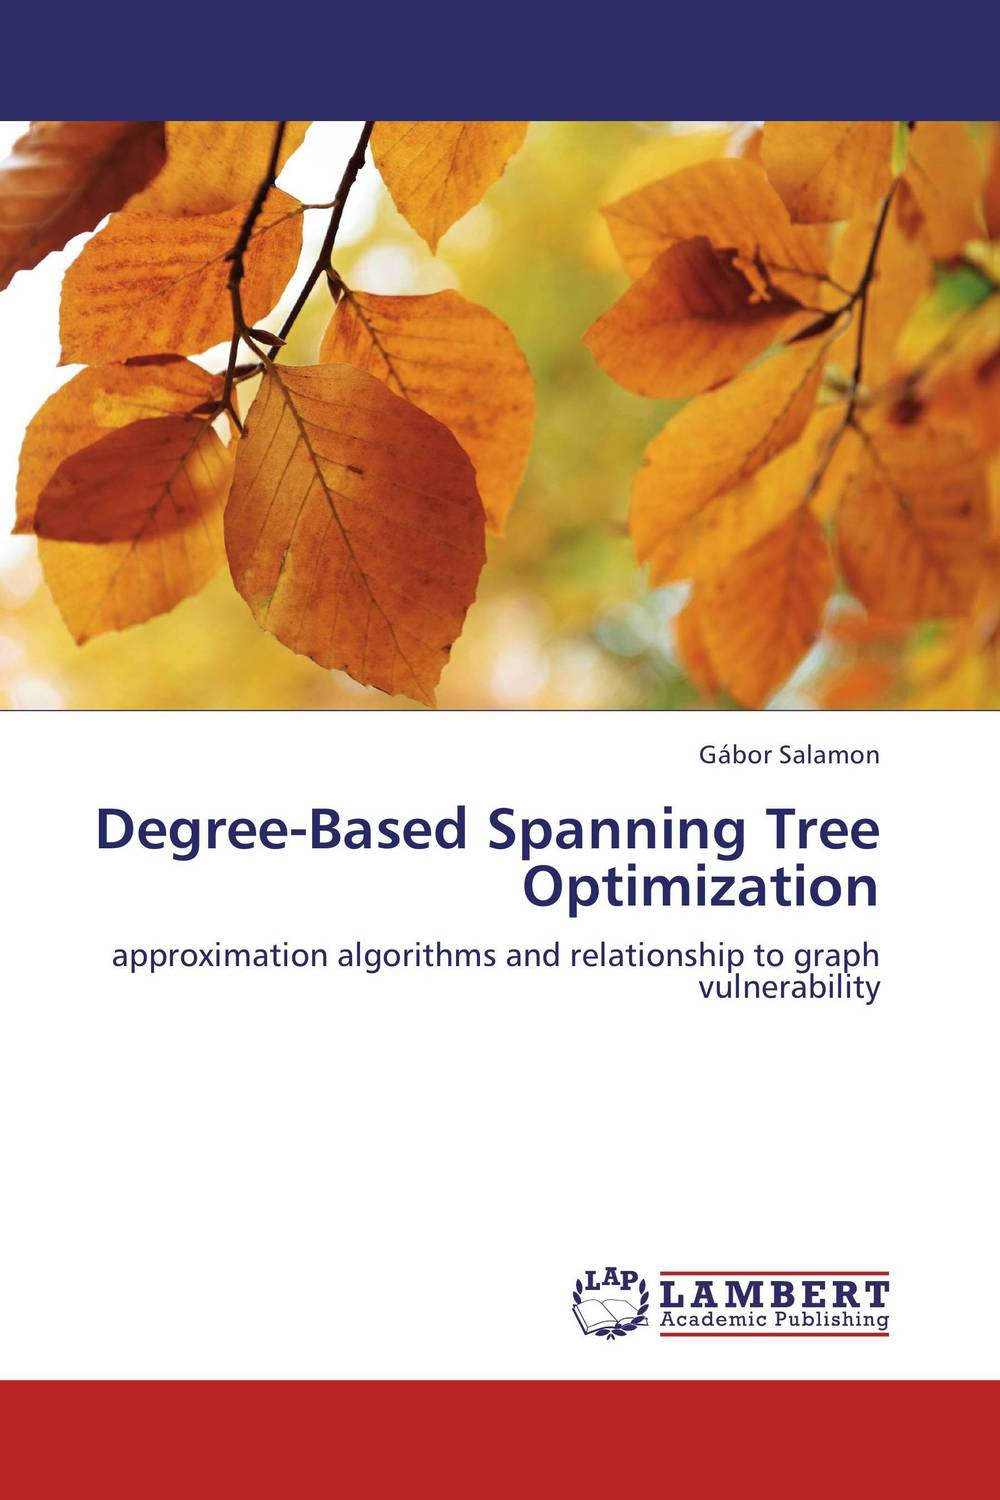 Degree-Based Spanning Tree Optimization c alexander london we give a squid a wedgie